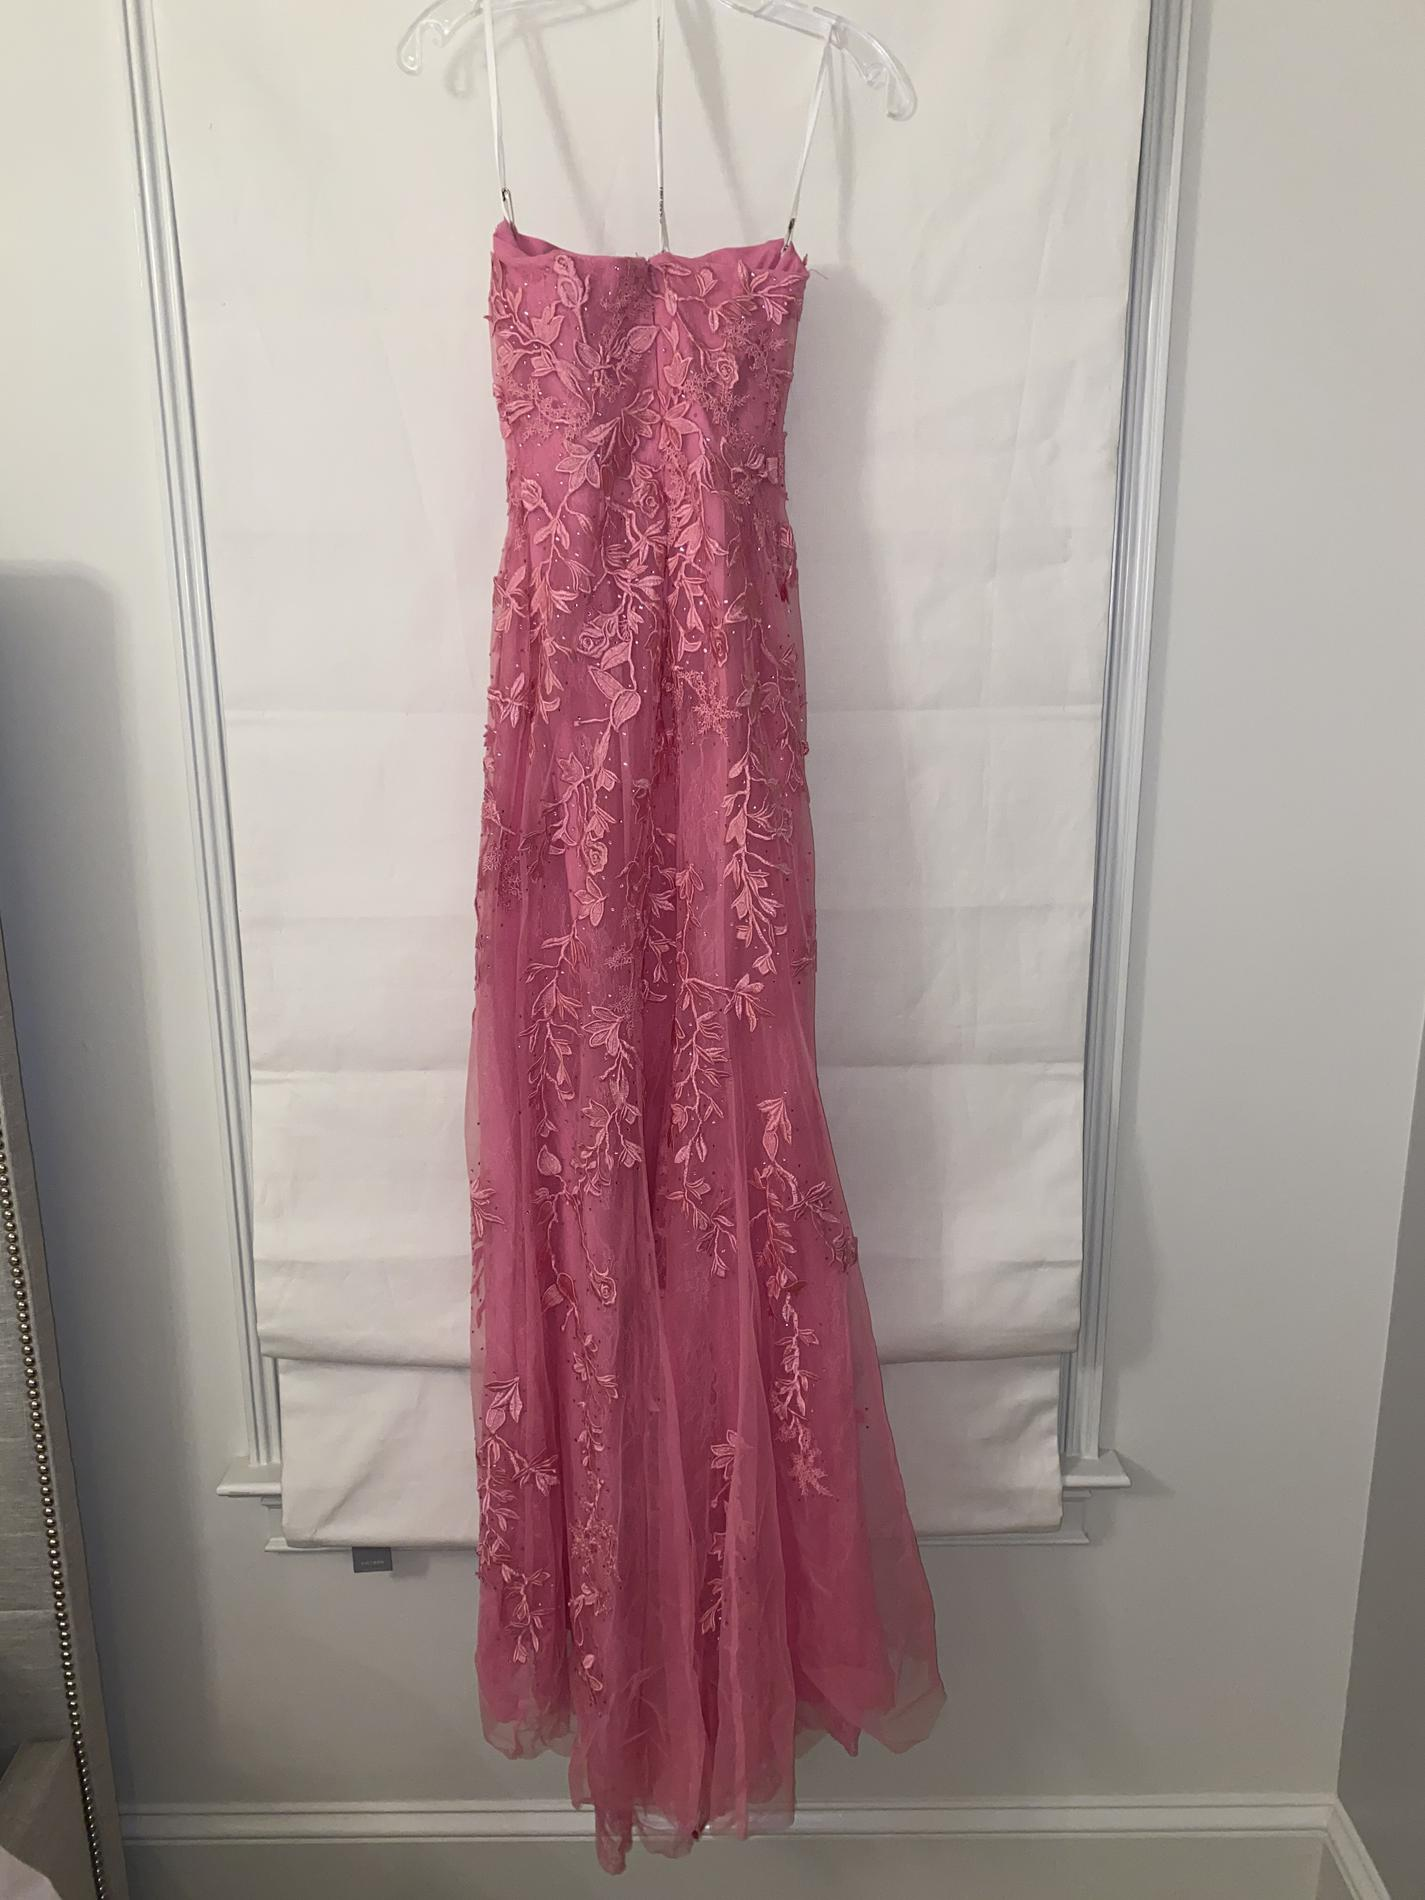 Sherri Hill Pink Size 2 Floral Padded Side slit Dress on Queenly